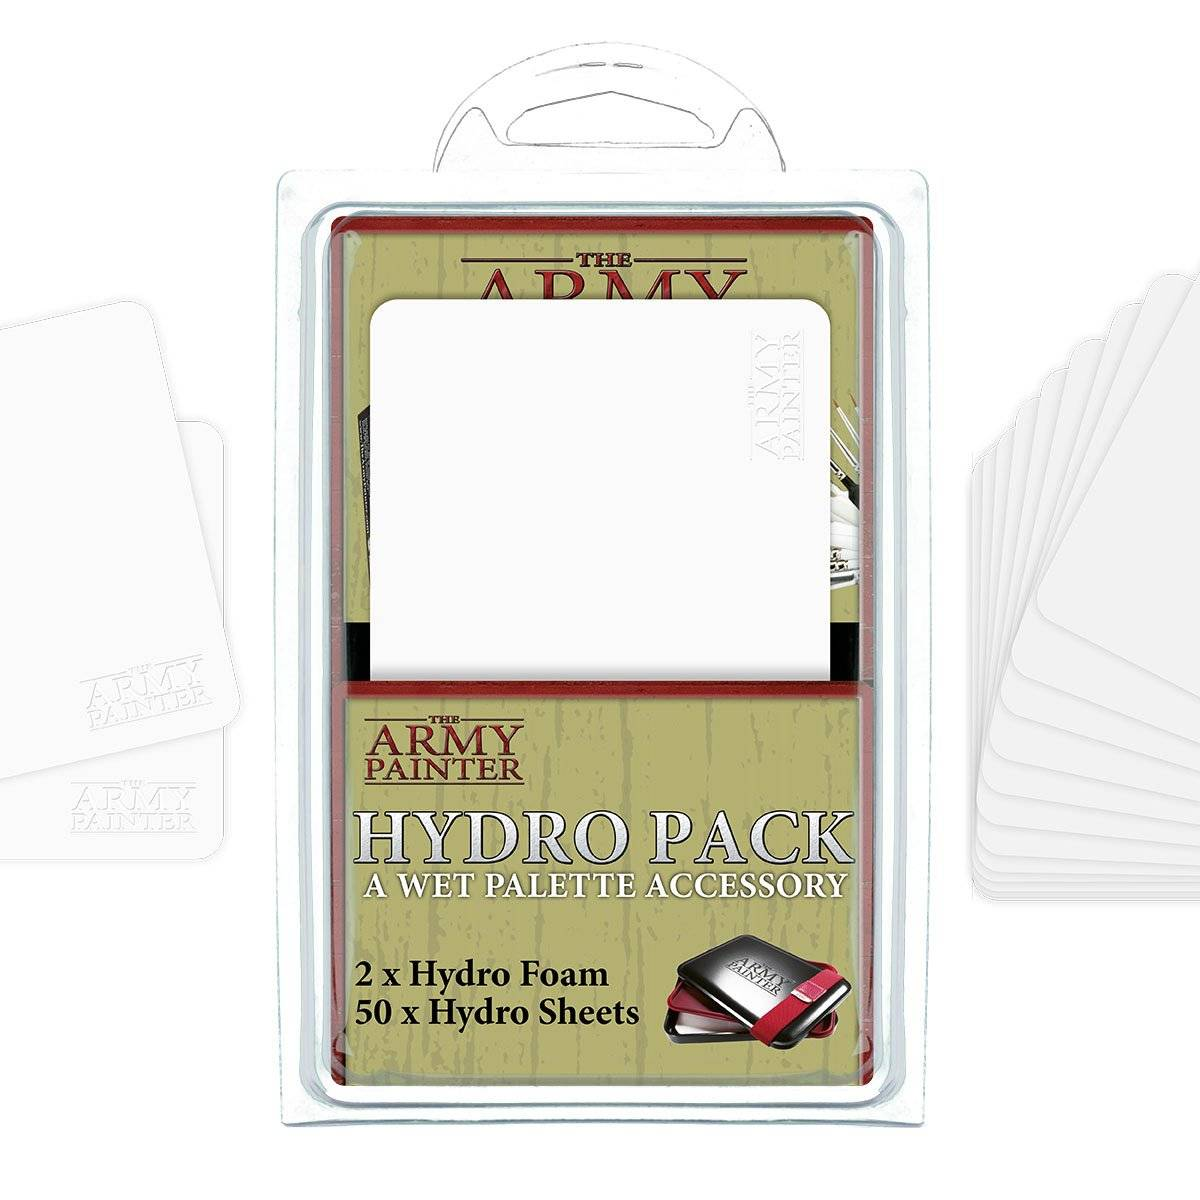 Army painter - Hydro pack - a wet palette accessory